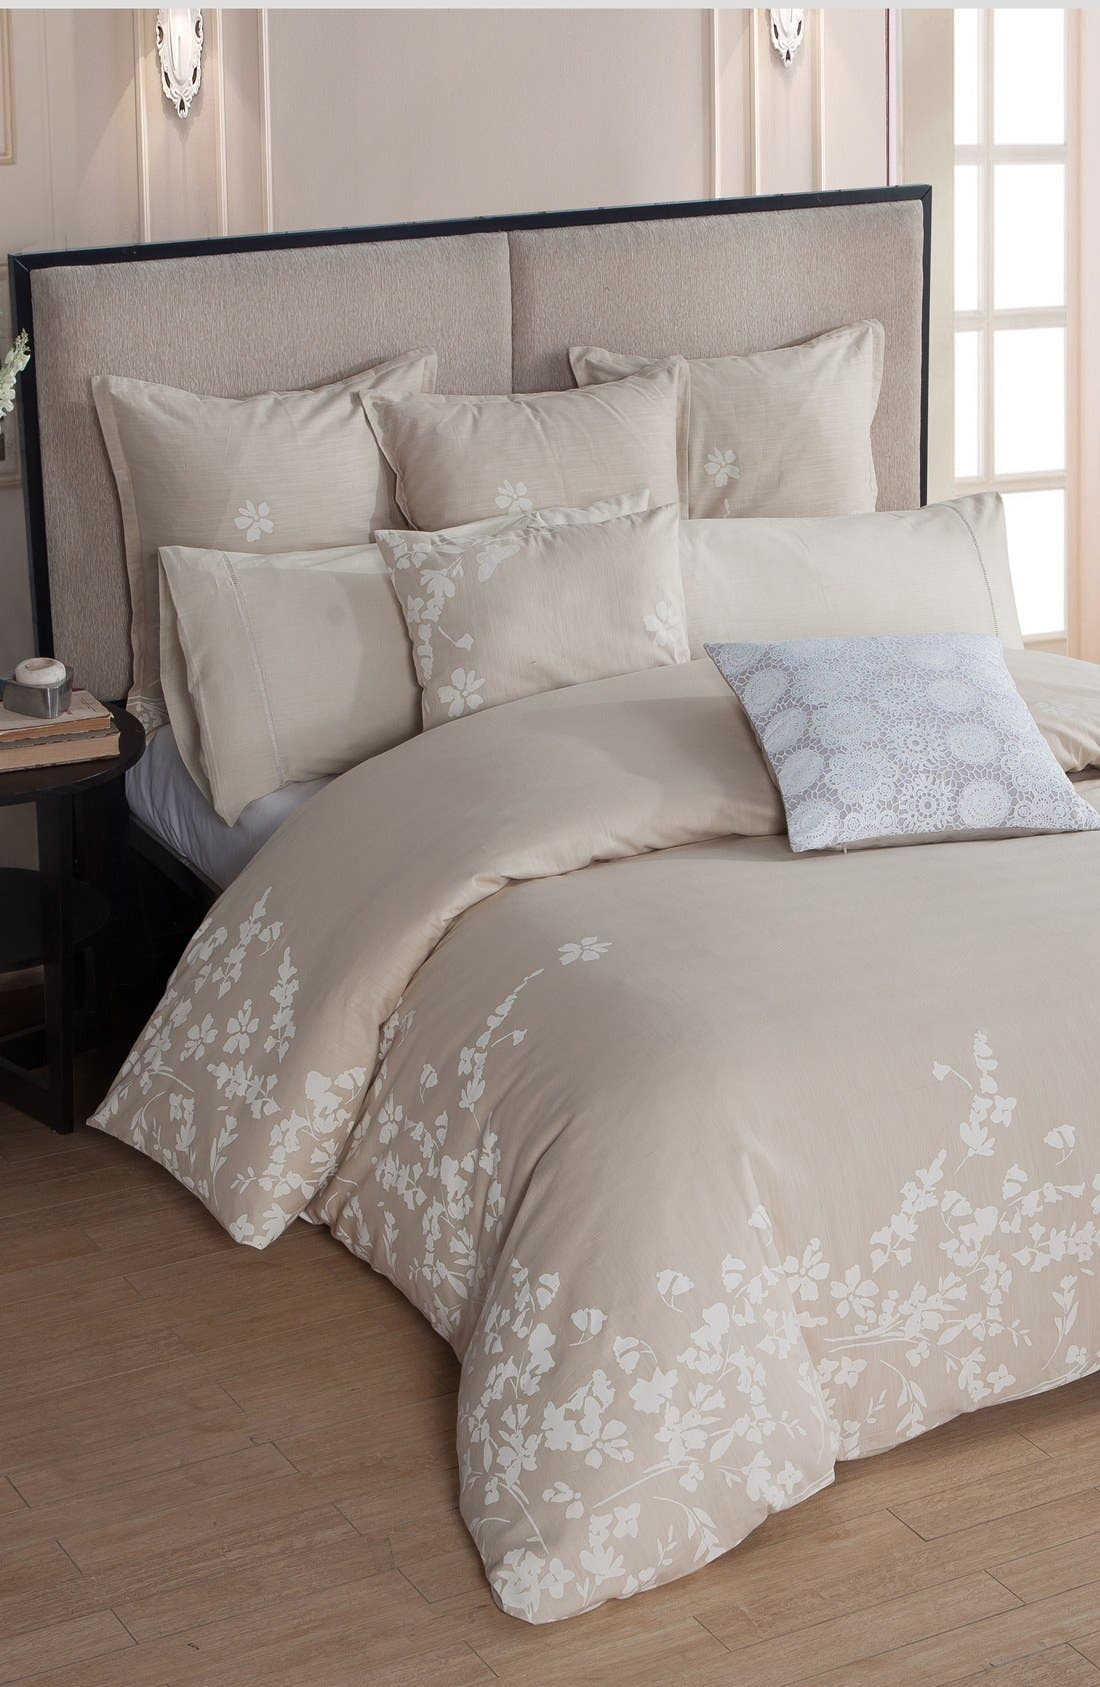 kensie 'Laramie' Bedding Collection